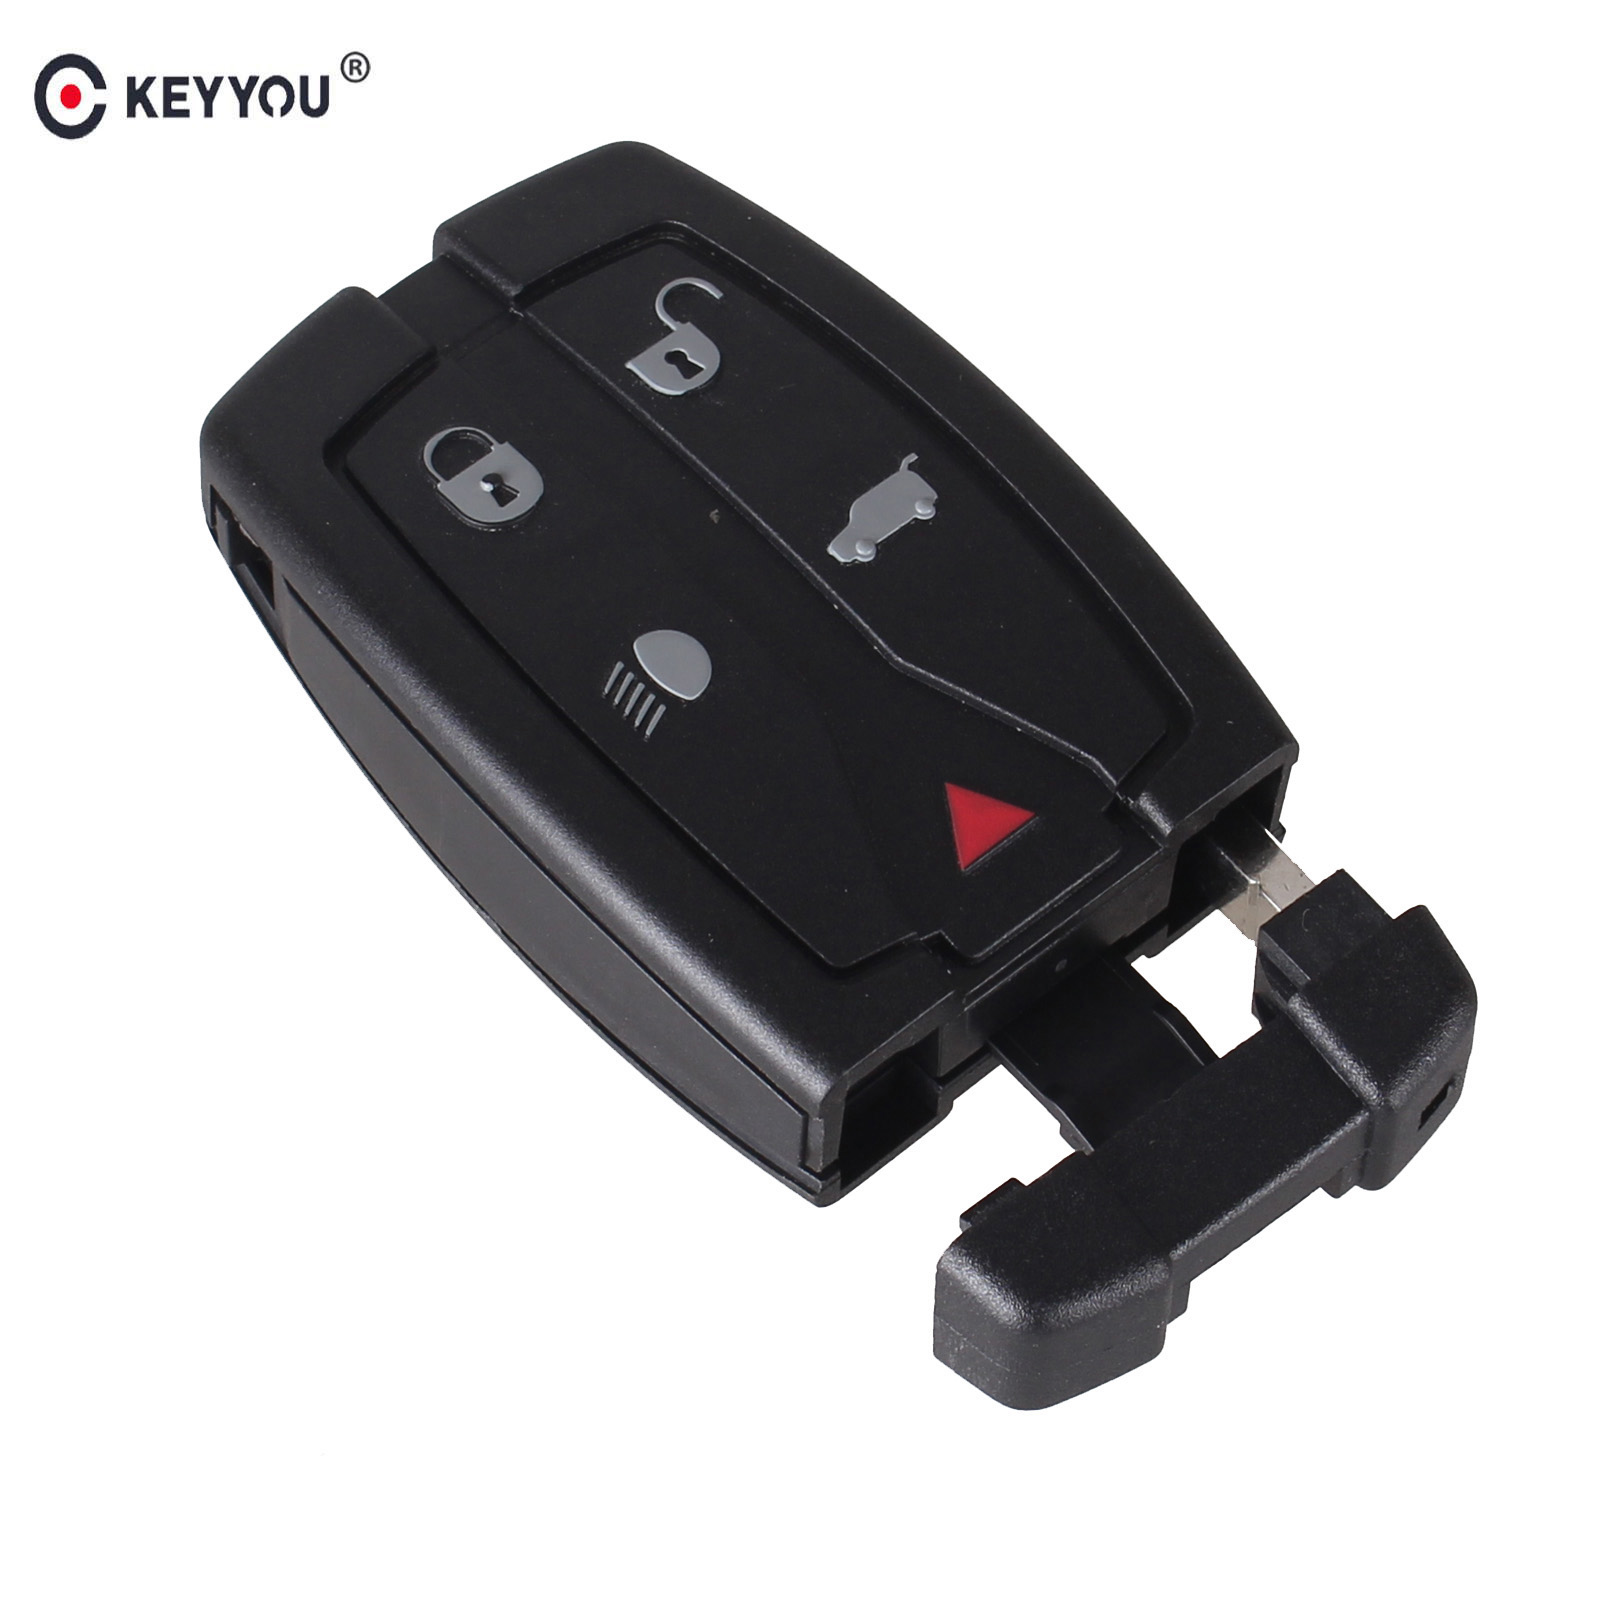 KEYYOU New Replacement Remote Key Shell Fit For Land Rover Freelander 2 3 5 Buttons Fob Smart Car Key Case With BladeKEYYOU New Replacement Remote Key Shell Fit For Land Rover Freelander 2 3 5 Buttons Fob Smart Car Key Case With Blade